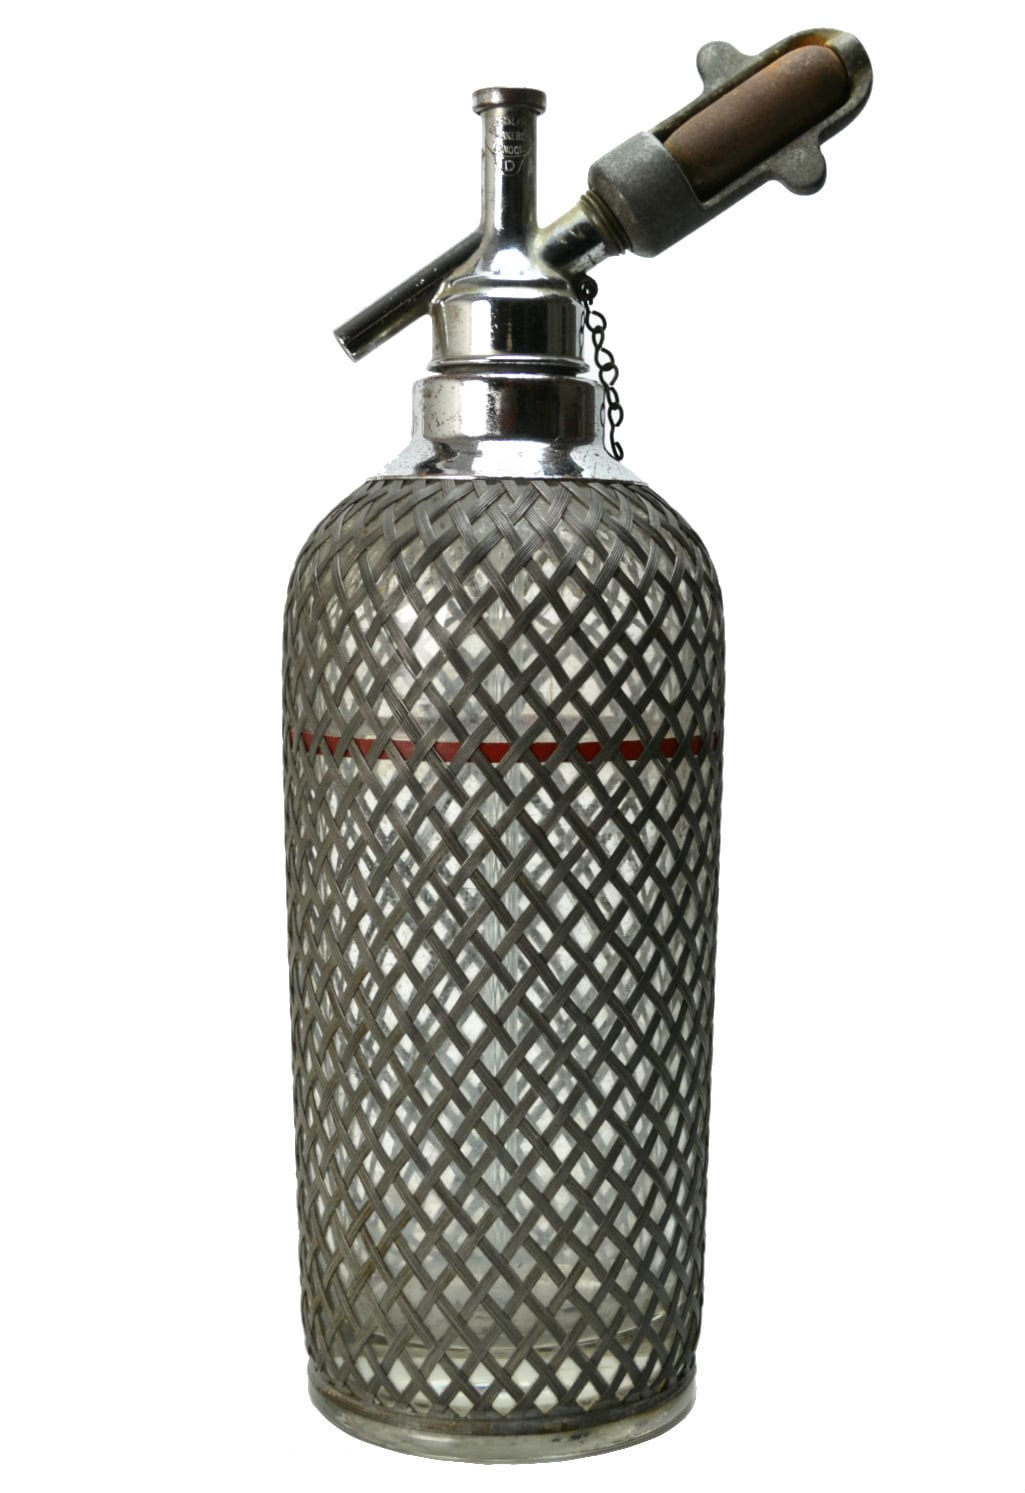 Art Deco Soda Syphon Glass Bottle with Chrome Tap by Sparklets, Vintage English, circa 1930